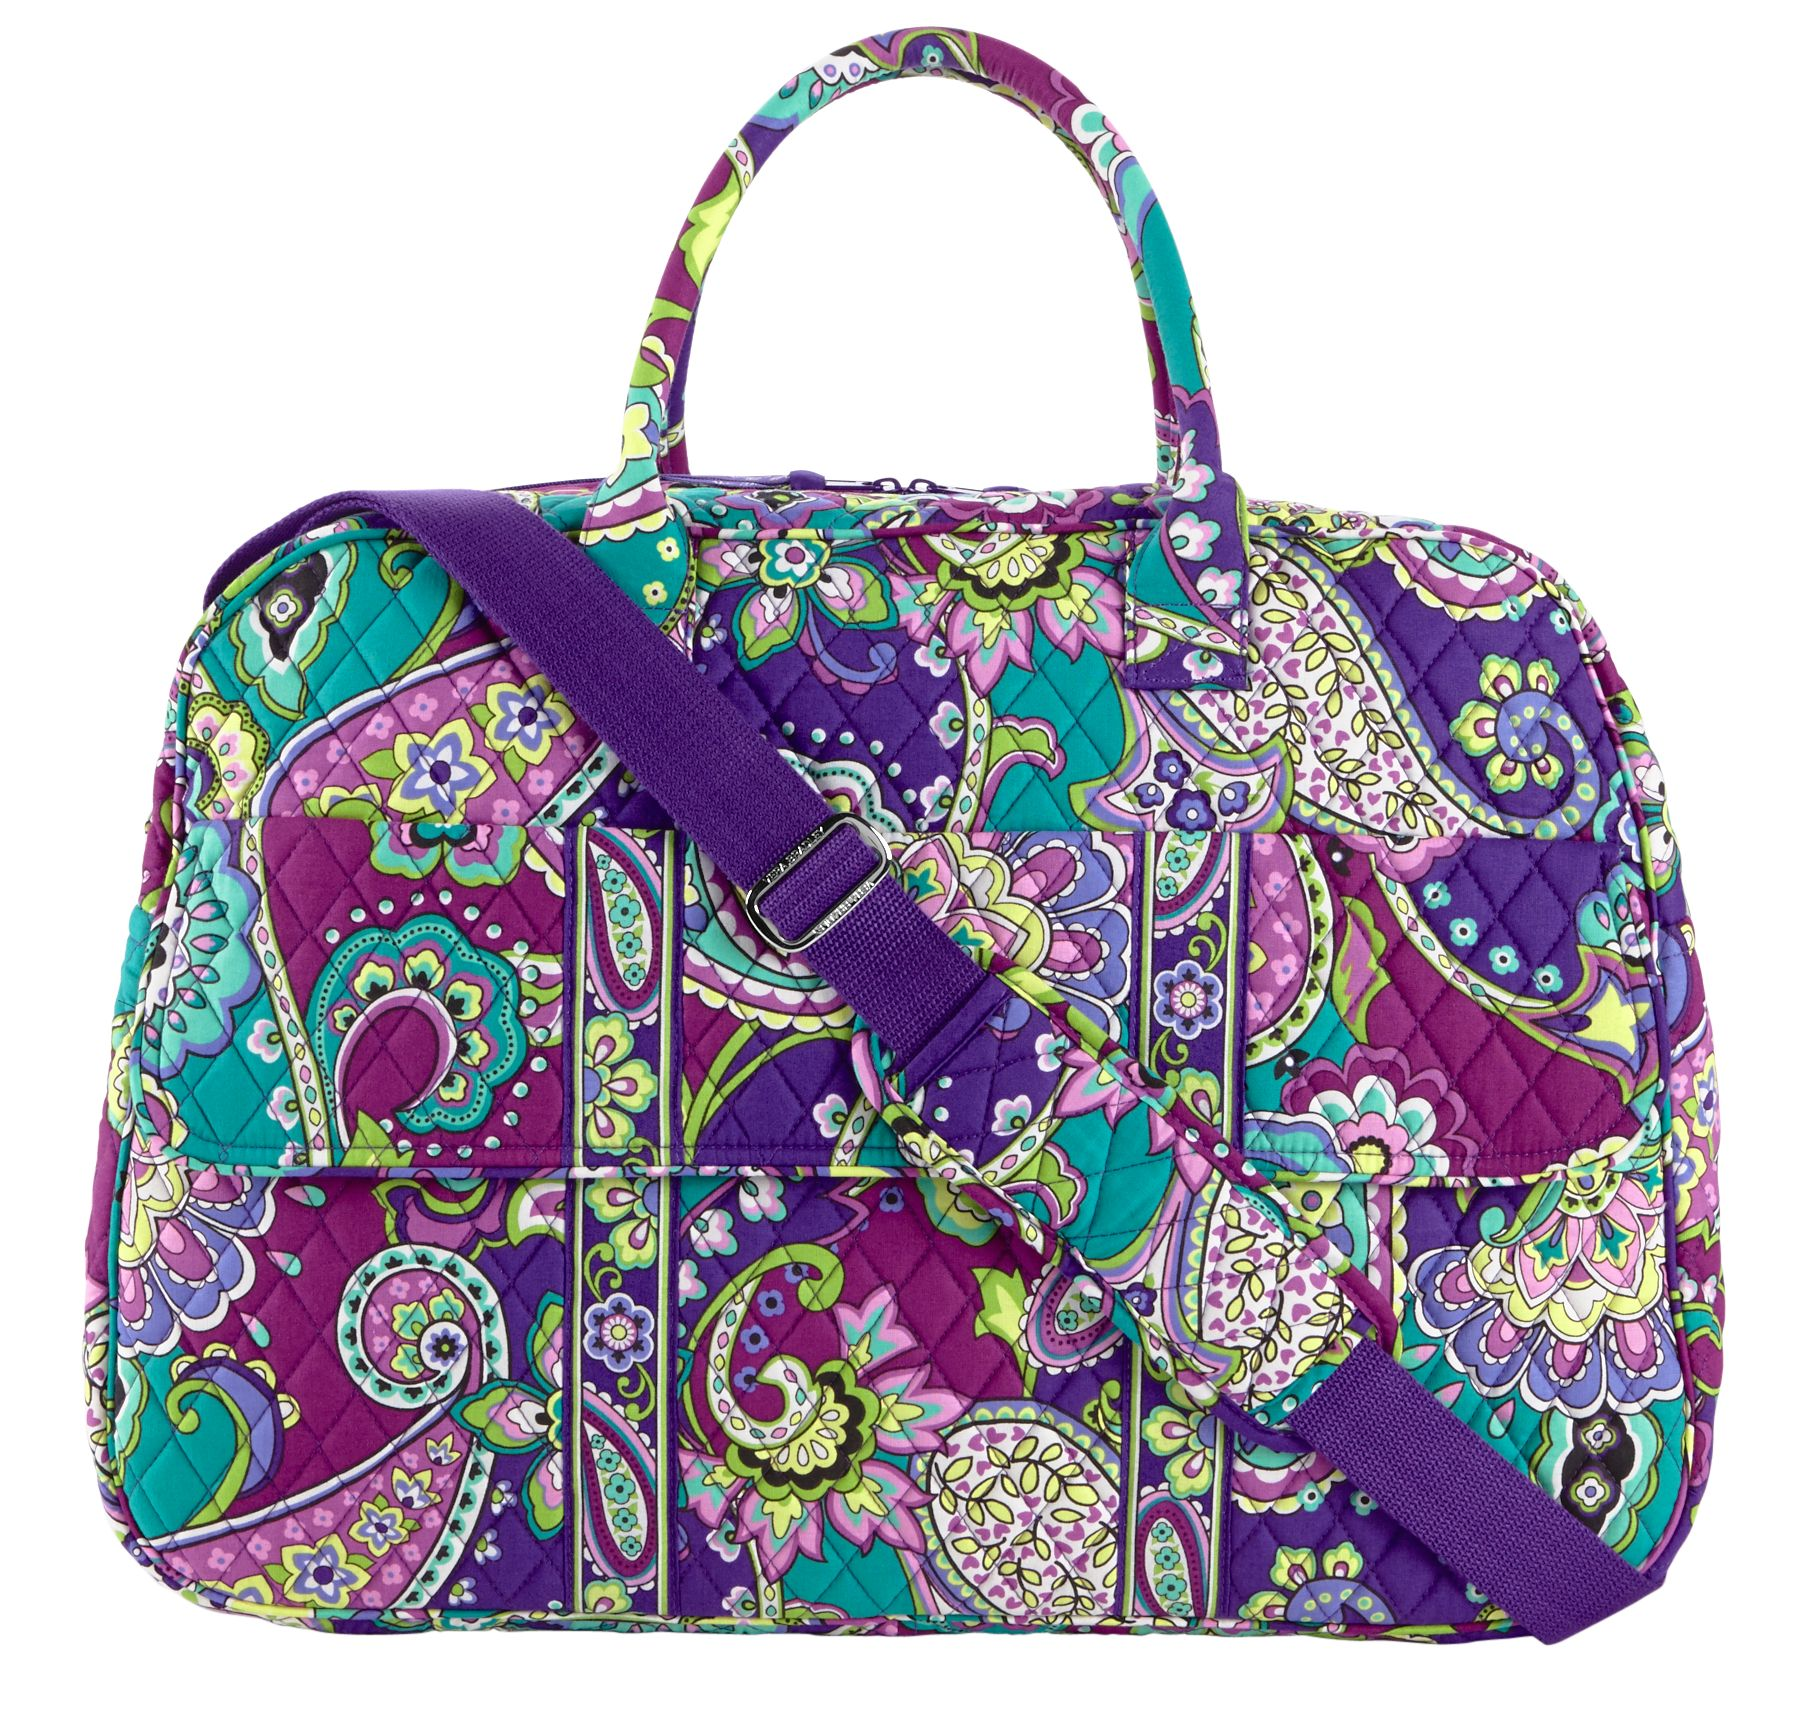 Vera Bradley Grand Traveler Bag in Heather